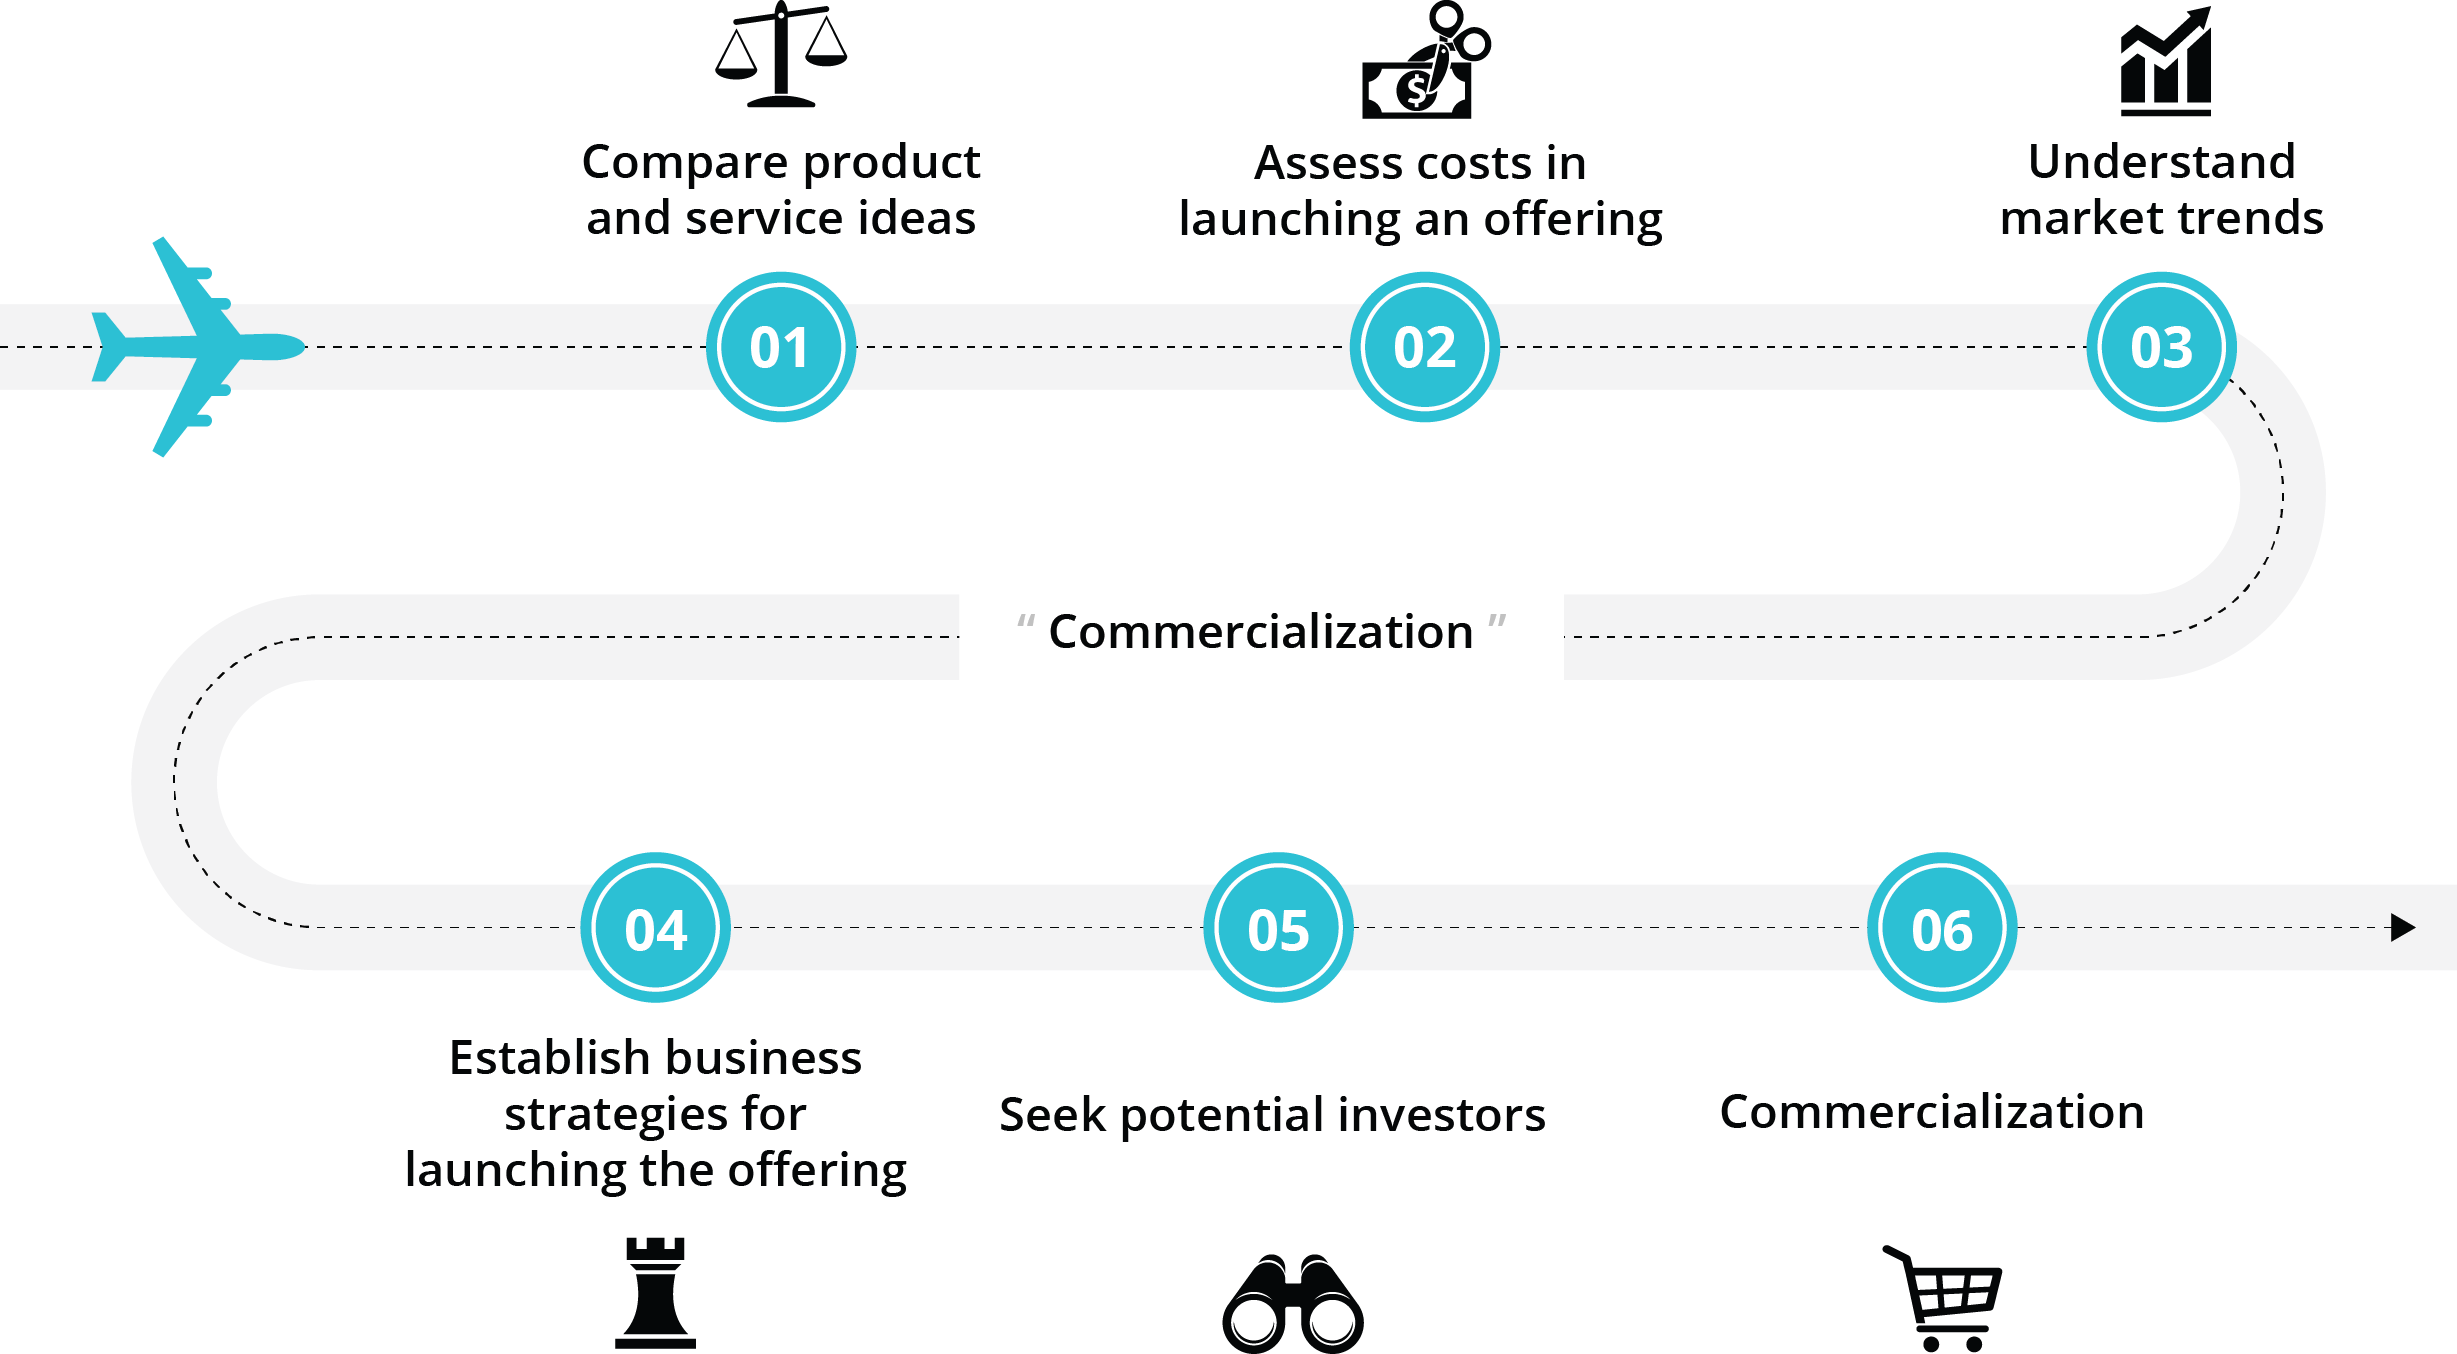 Steps to Commercialization